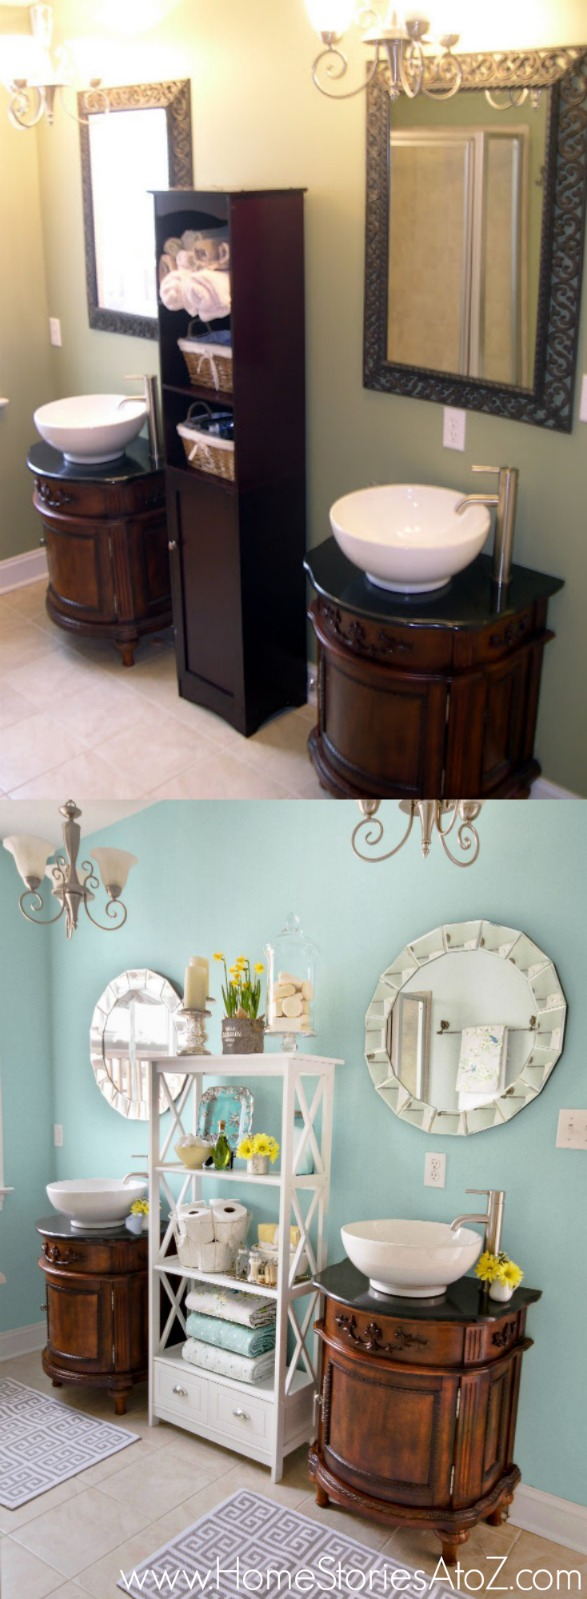 Stunning Bathroom makeover in Sherwin Williams Watery